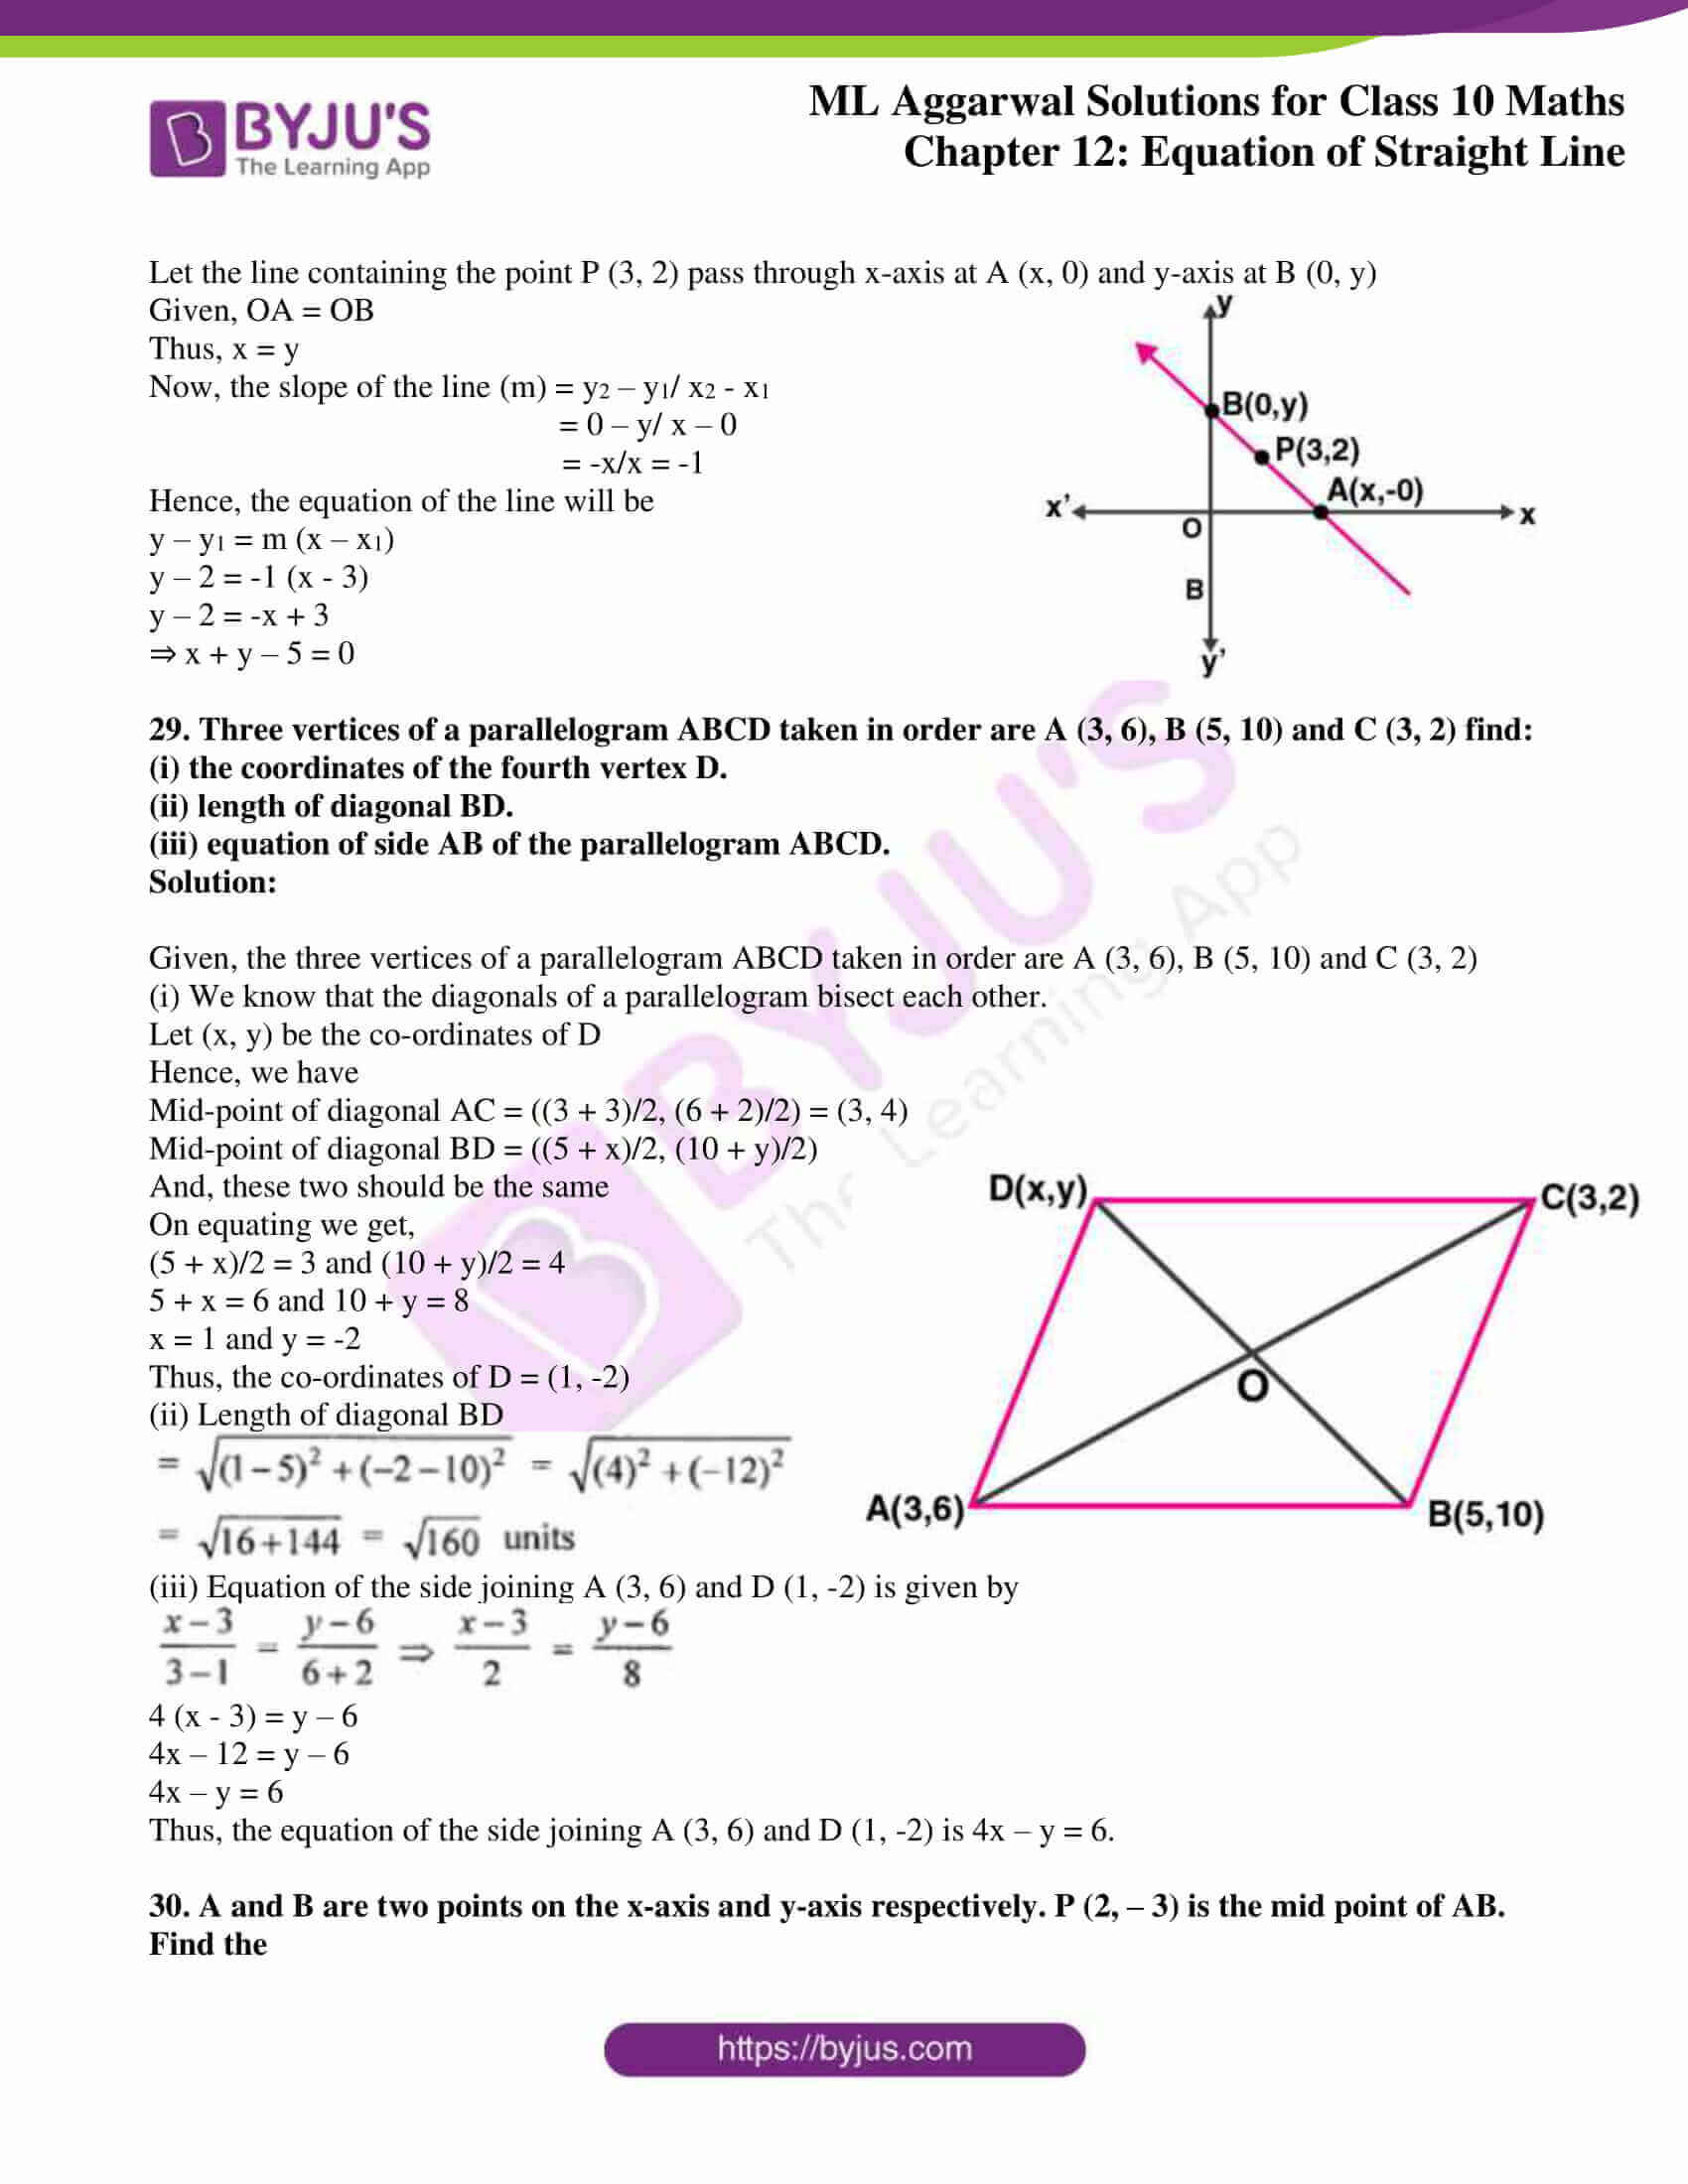 ml aggarwal solutions for class 10 maths chapter 12 12